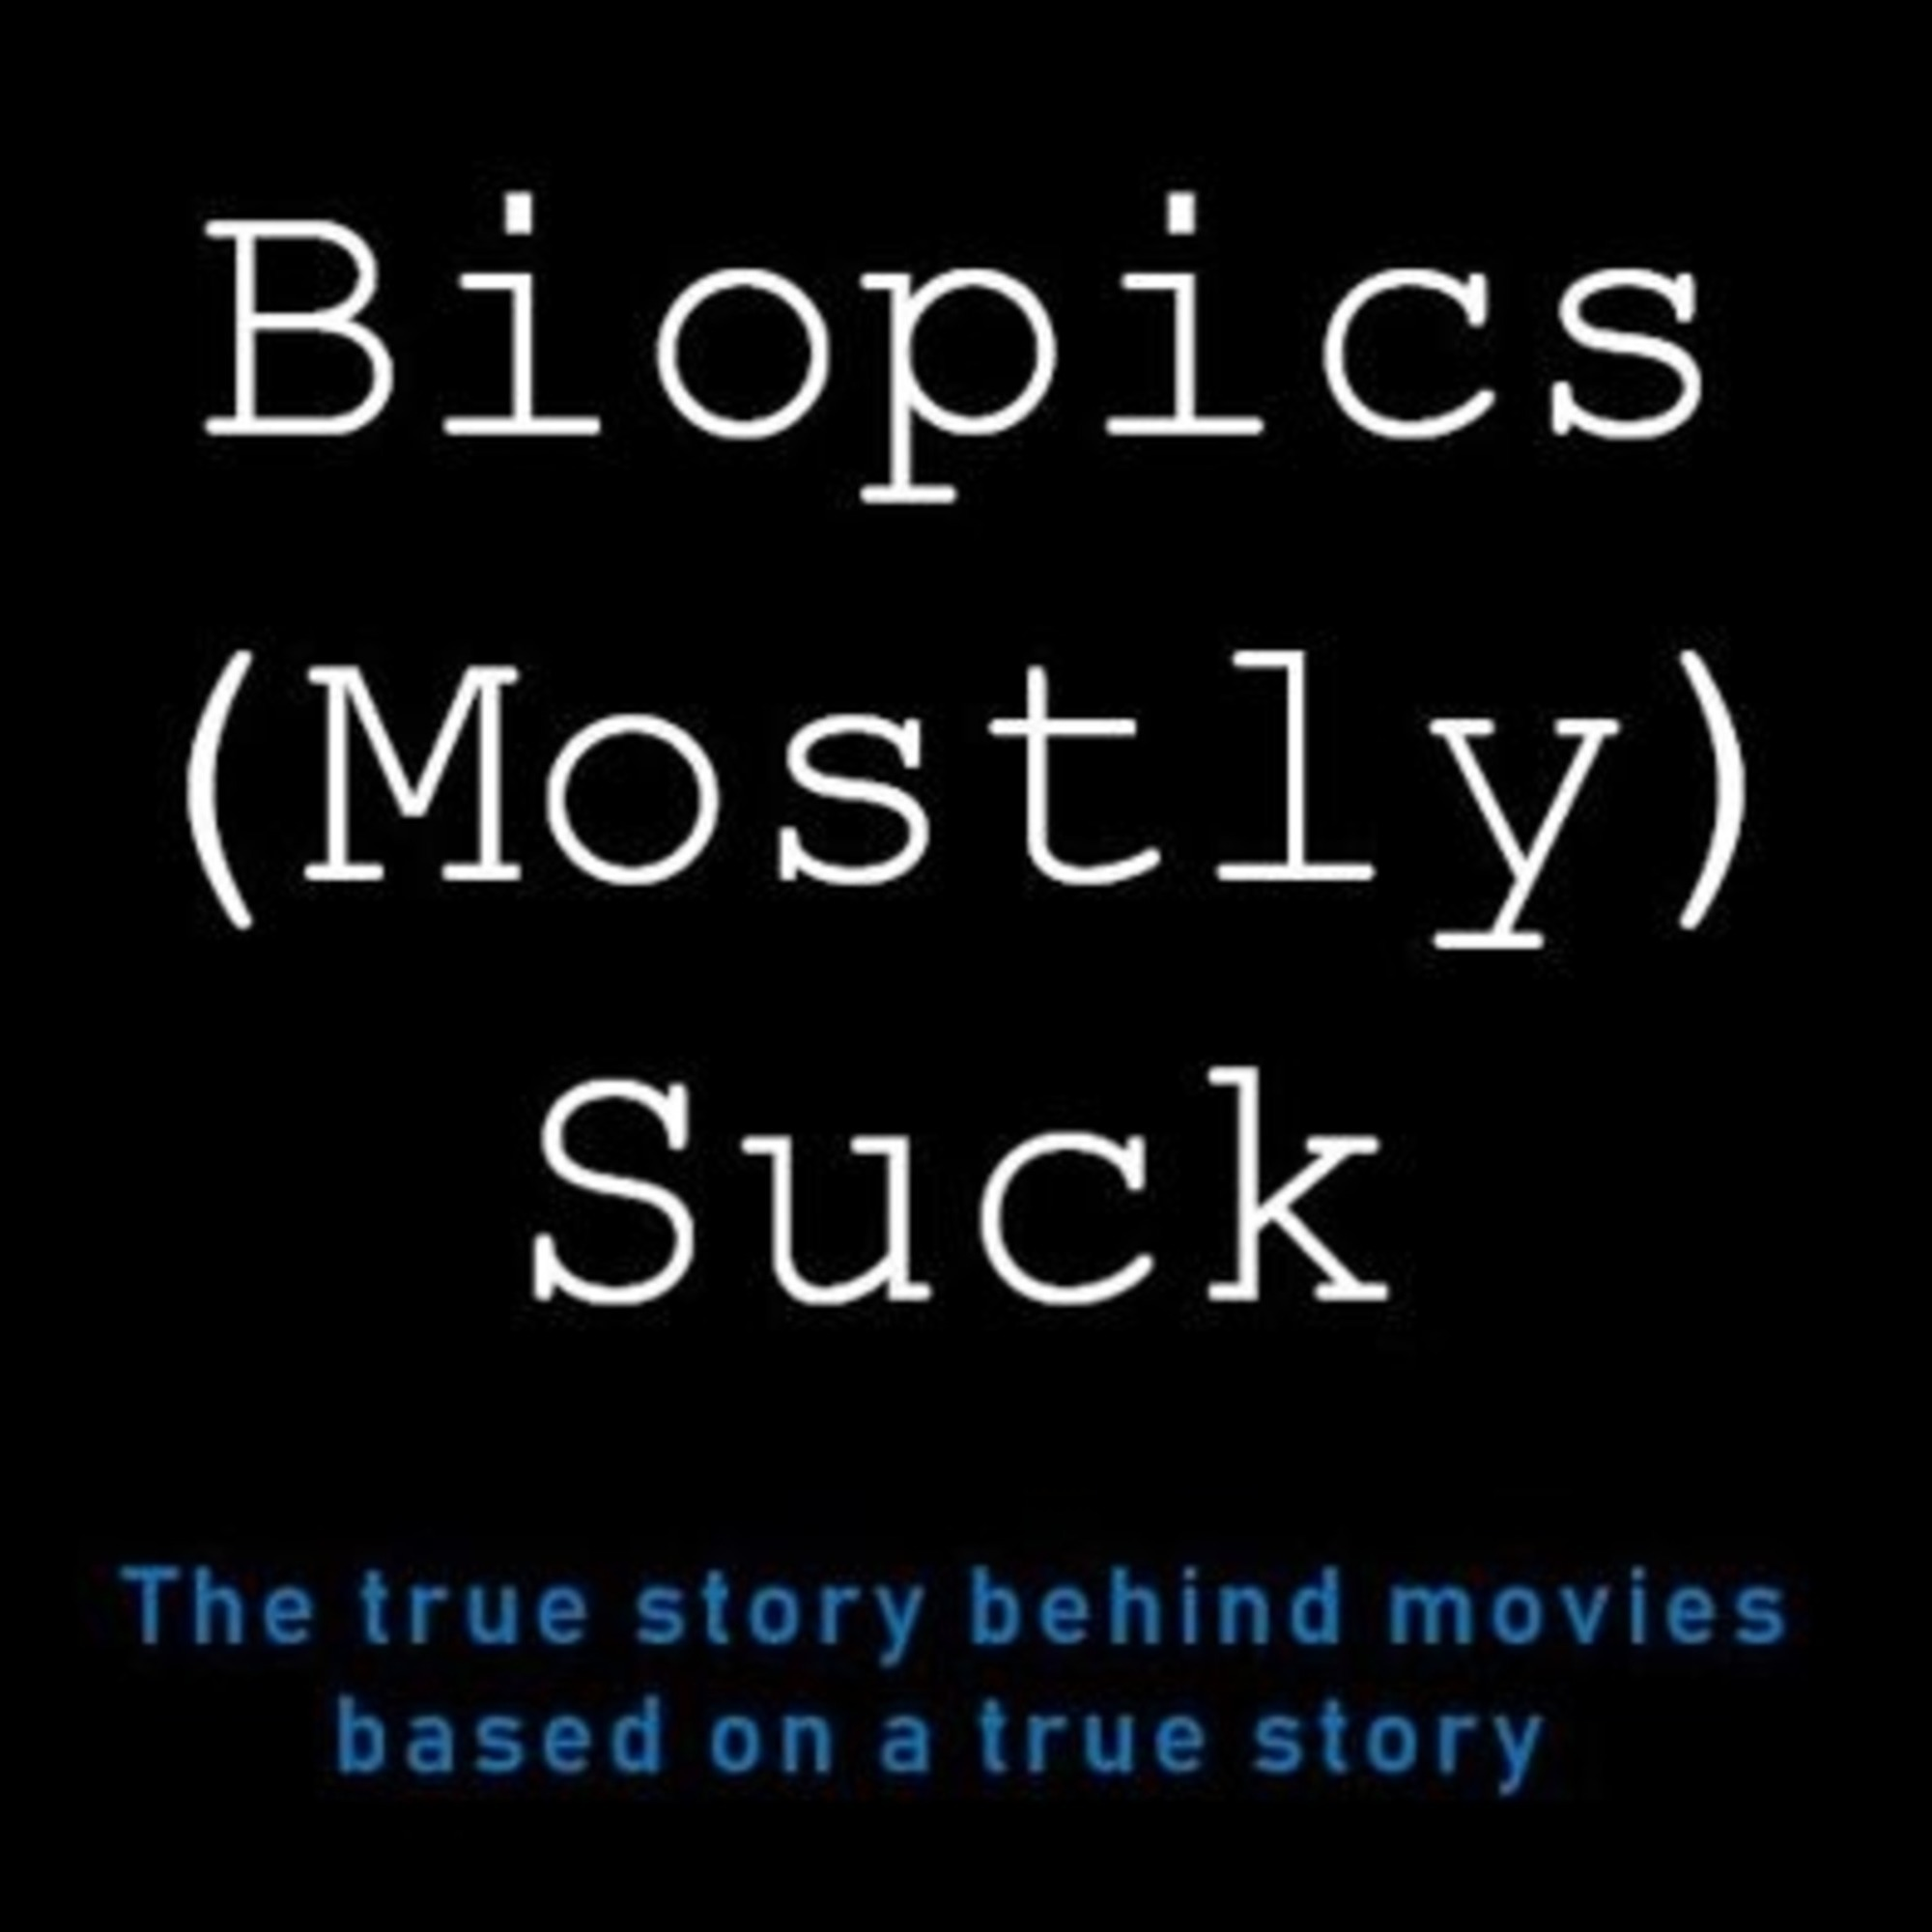 Biopics (Mostly) Suck - Talk To Me - Episode 21